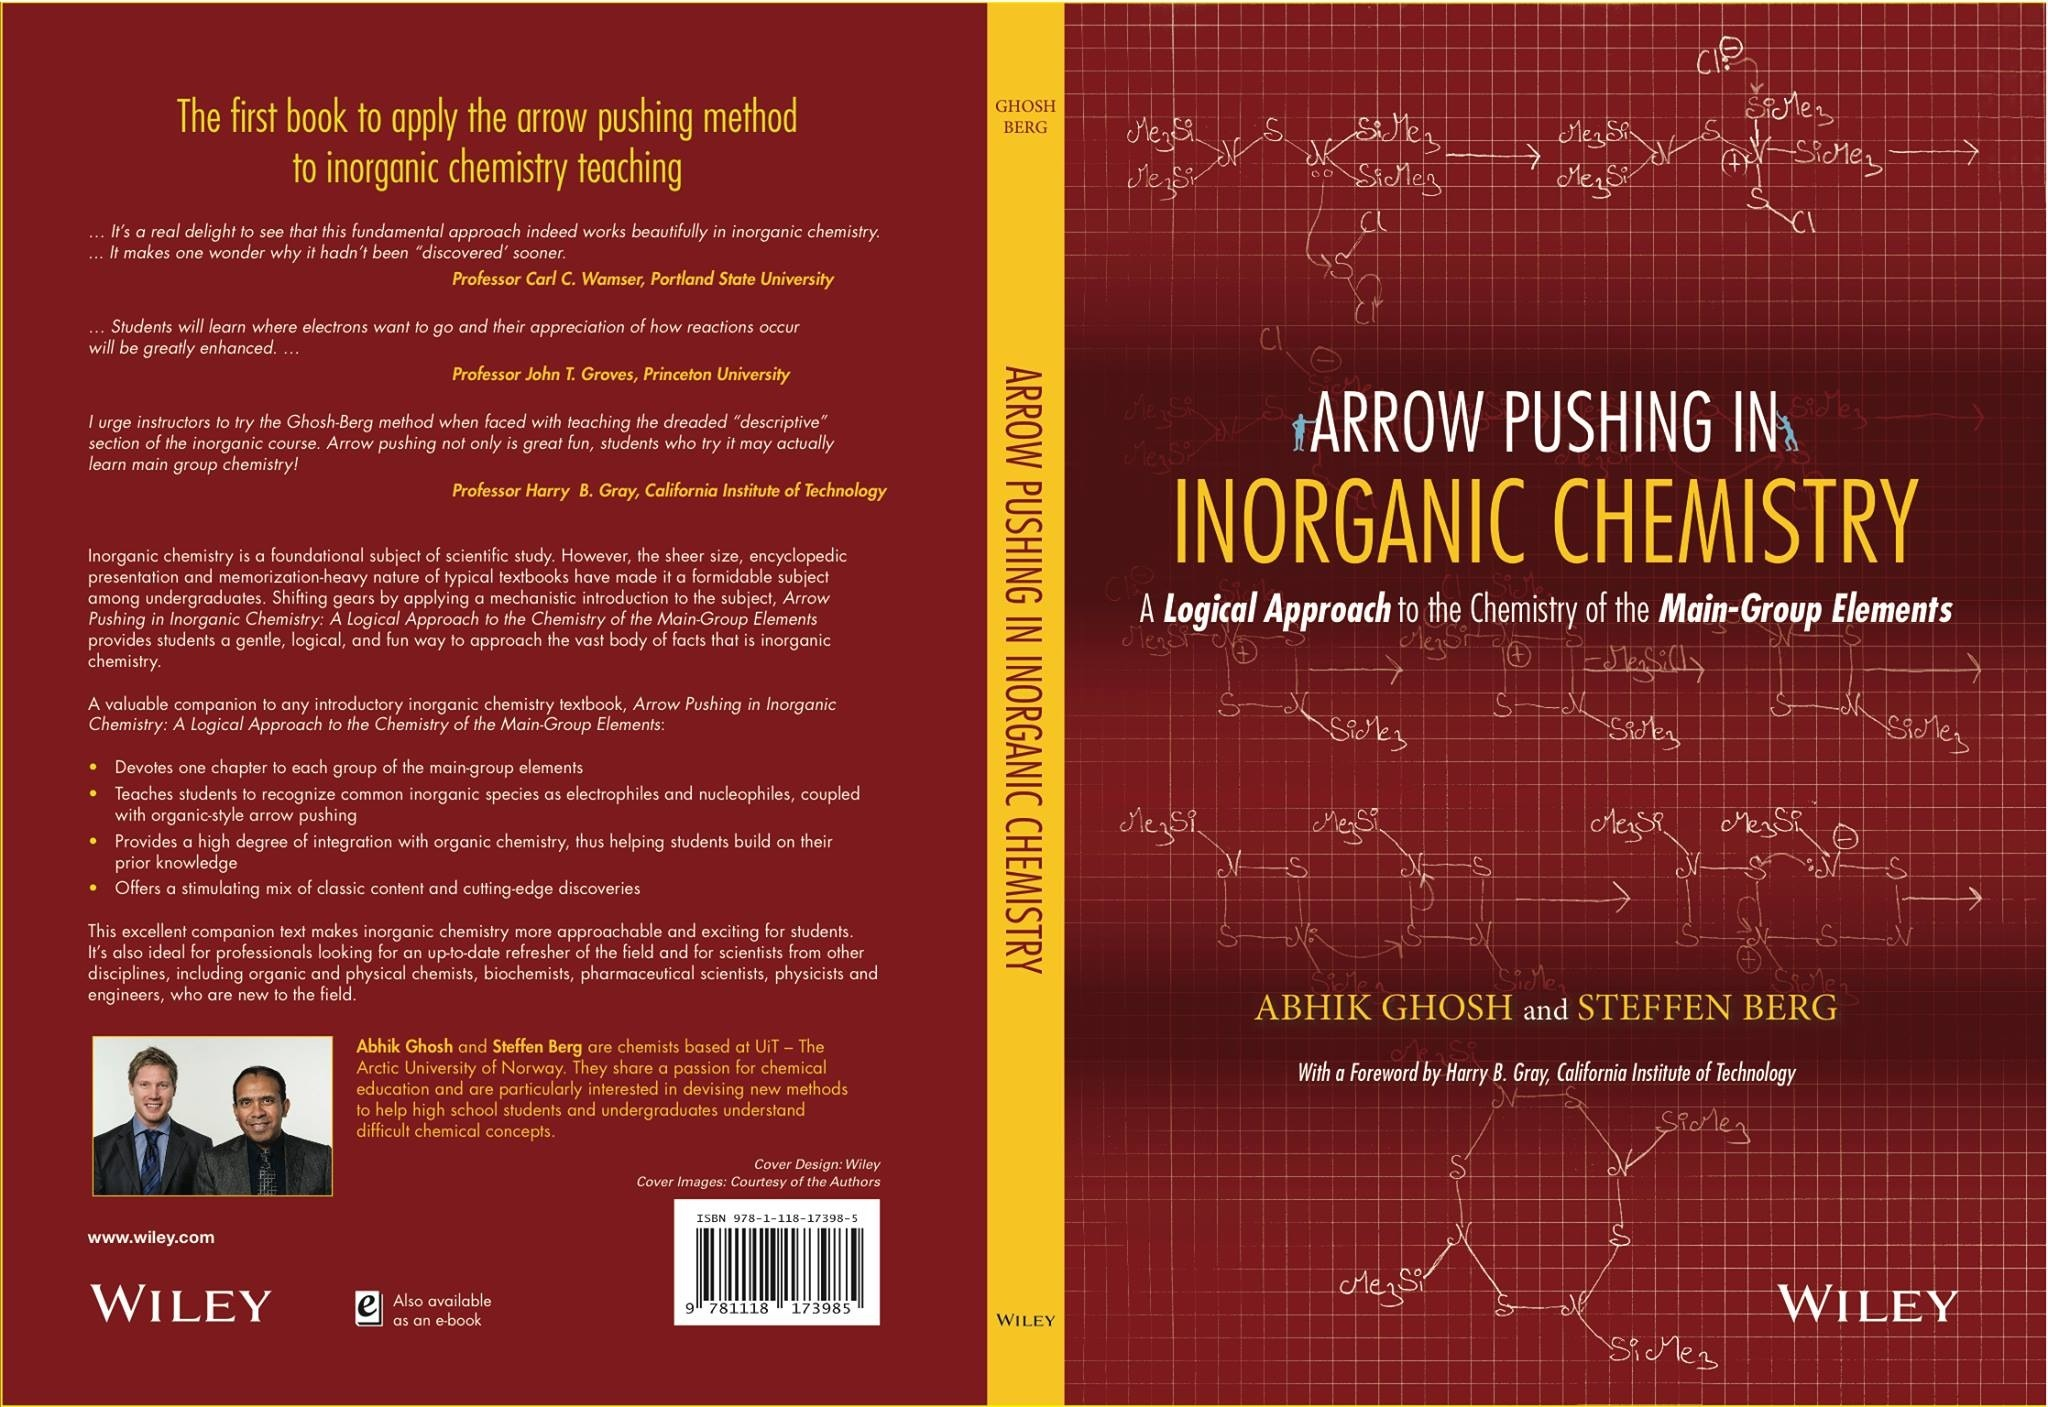 arrow pushing in inorganic chemistry viper front and back cover of the book arrow pushing in inorganic chemistry